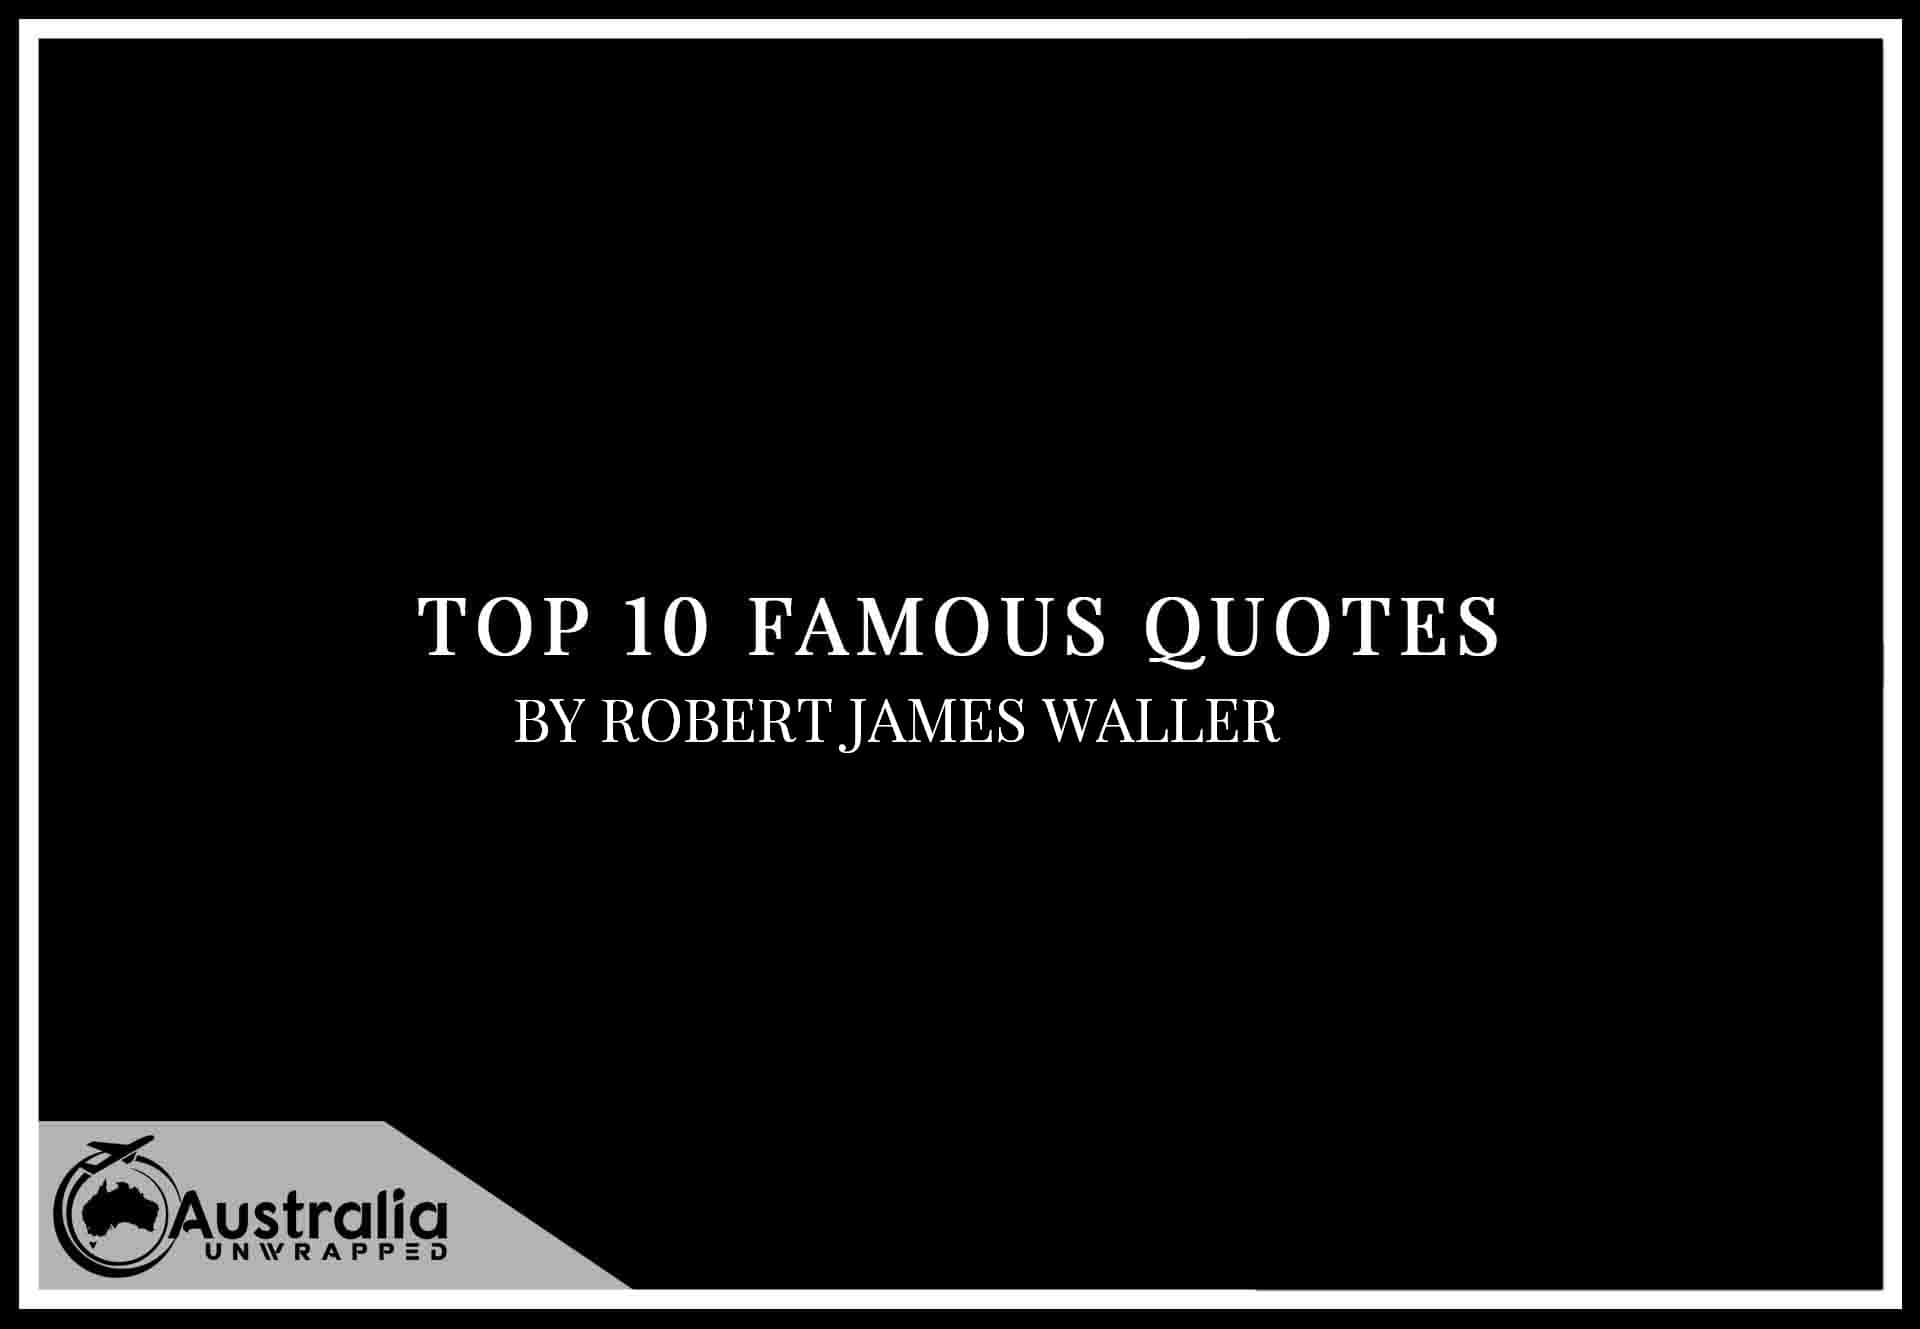 Top 10 Famous Quotes by Author Robert James Waller